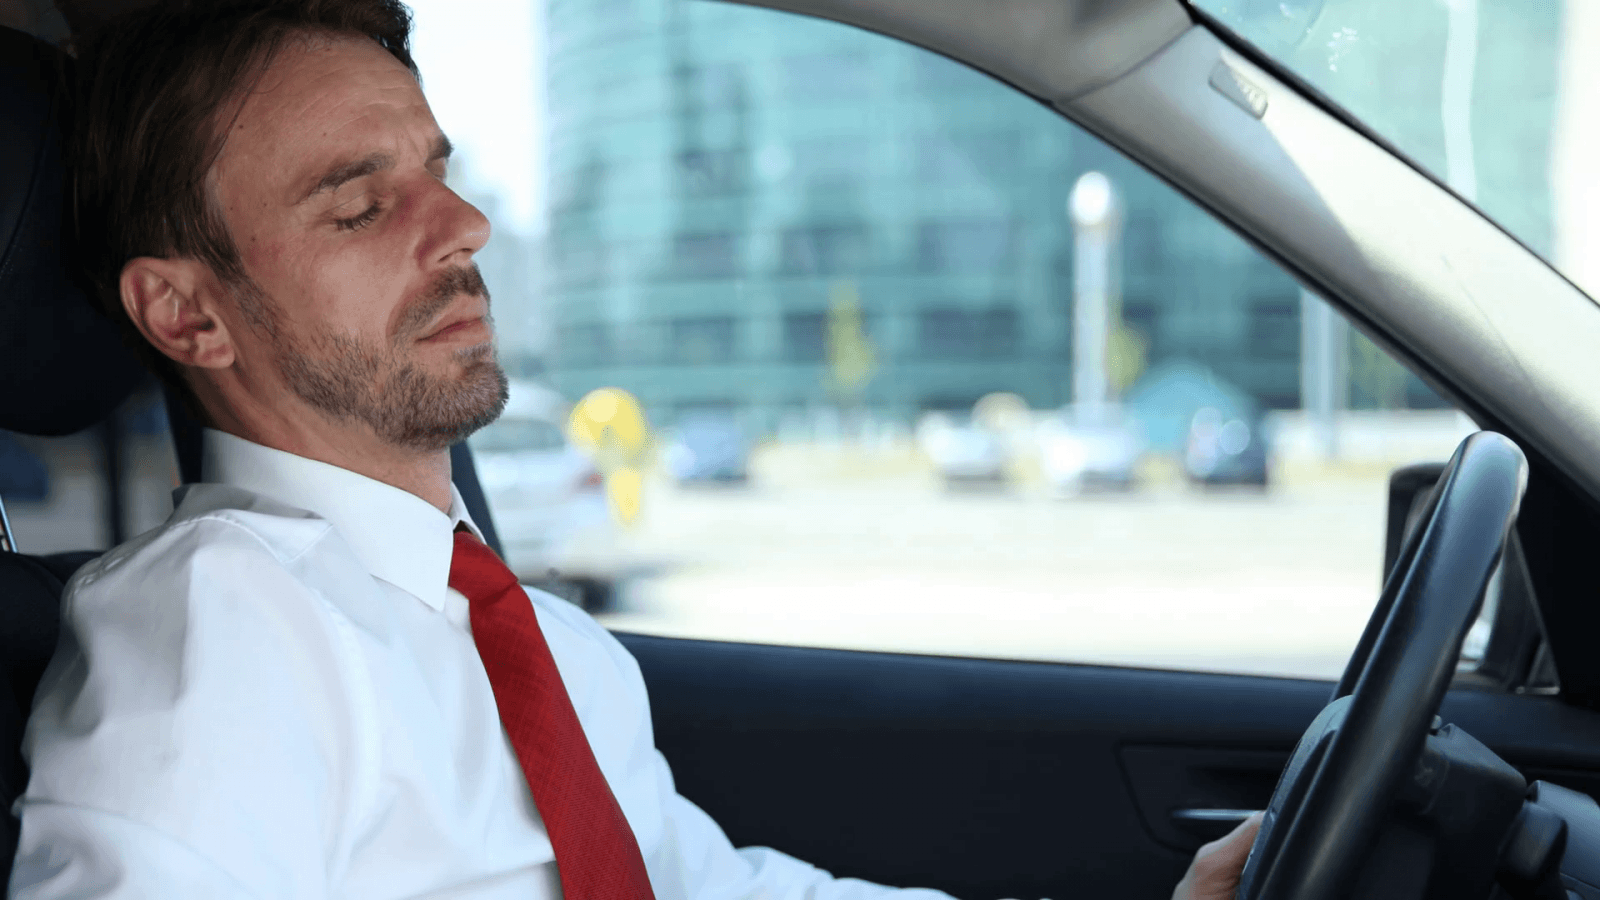 Everything You Need To Know About Sleeping In Car With